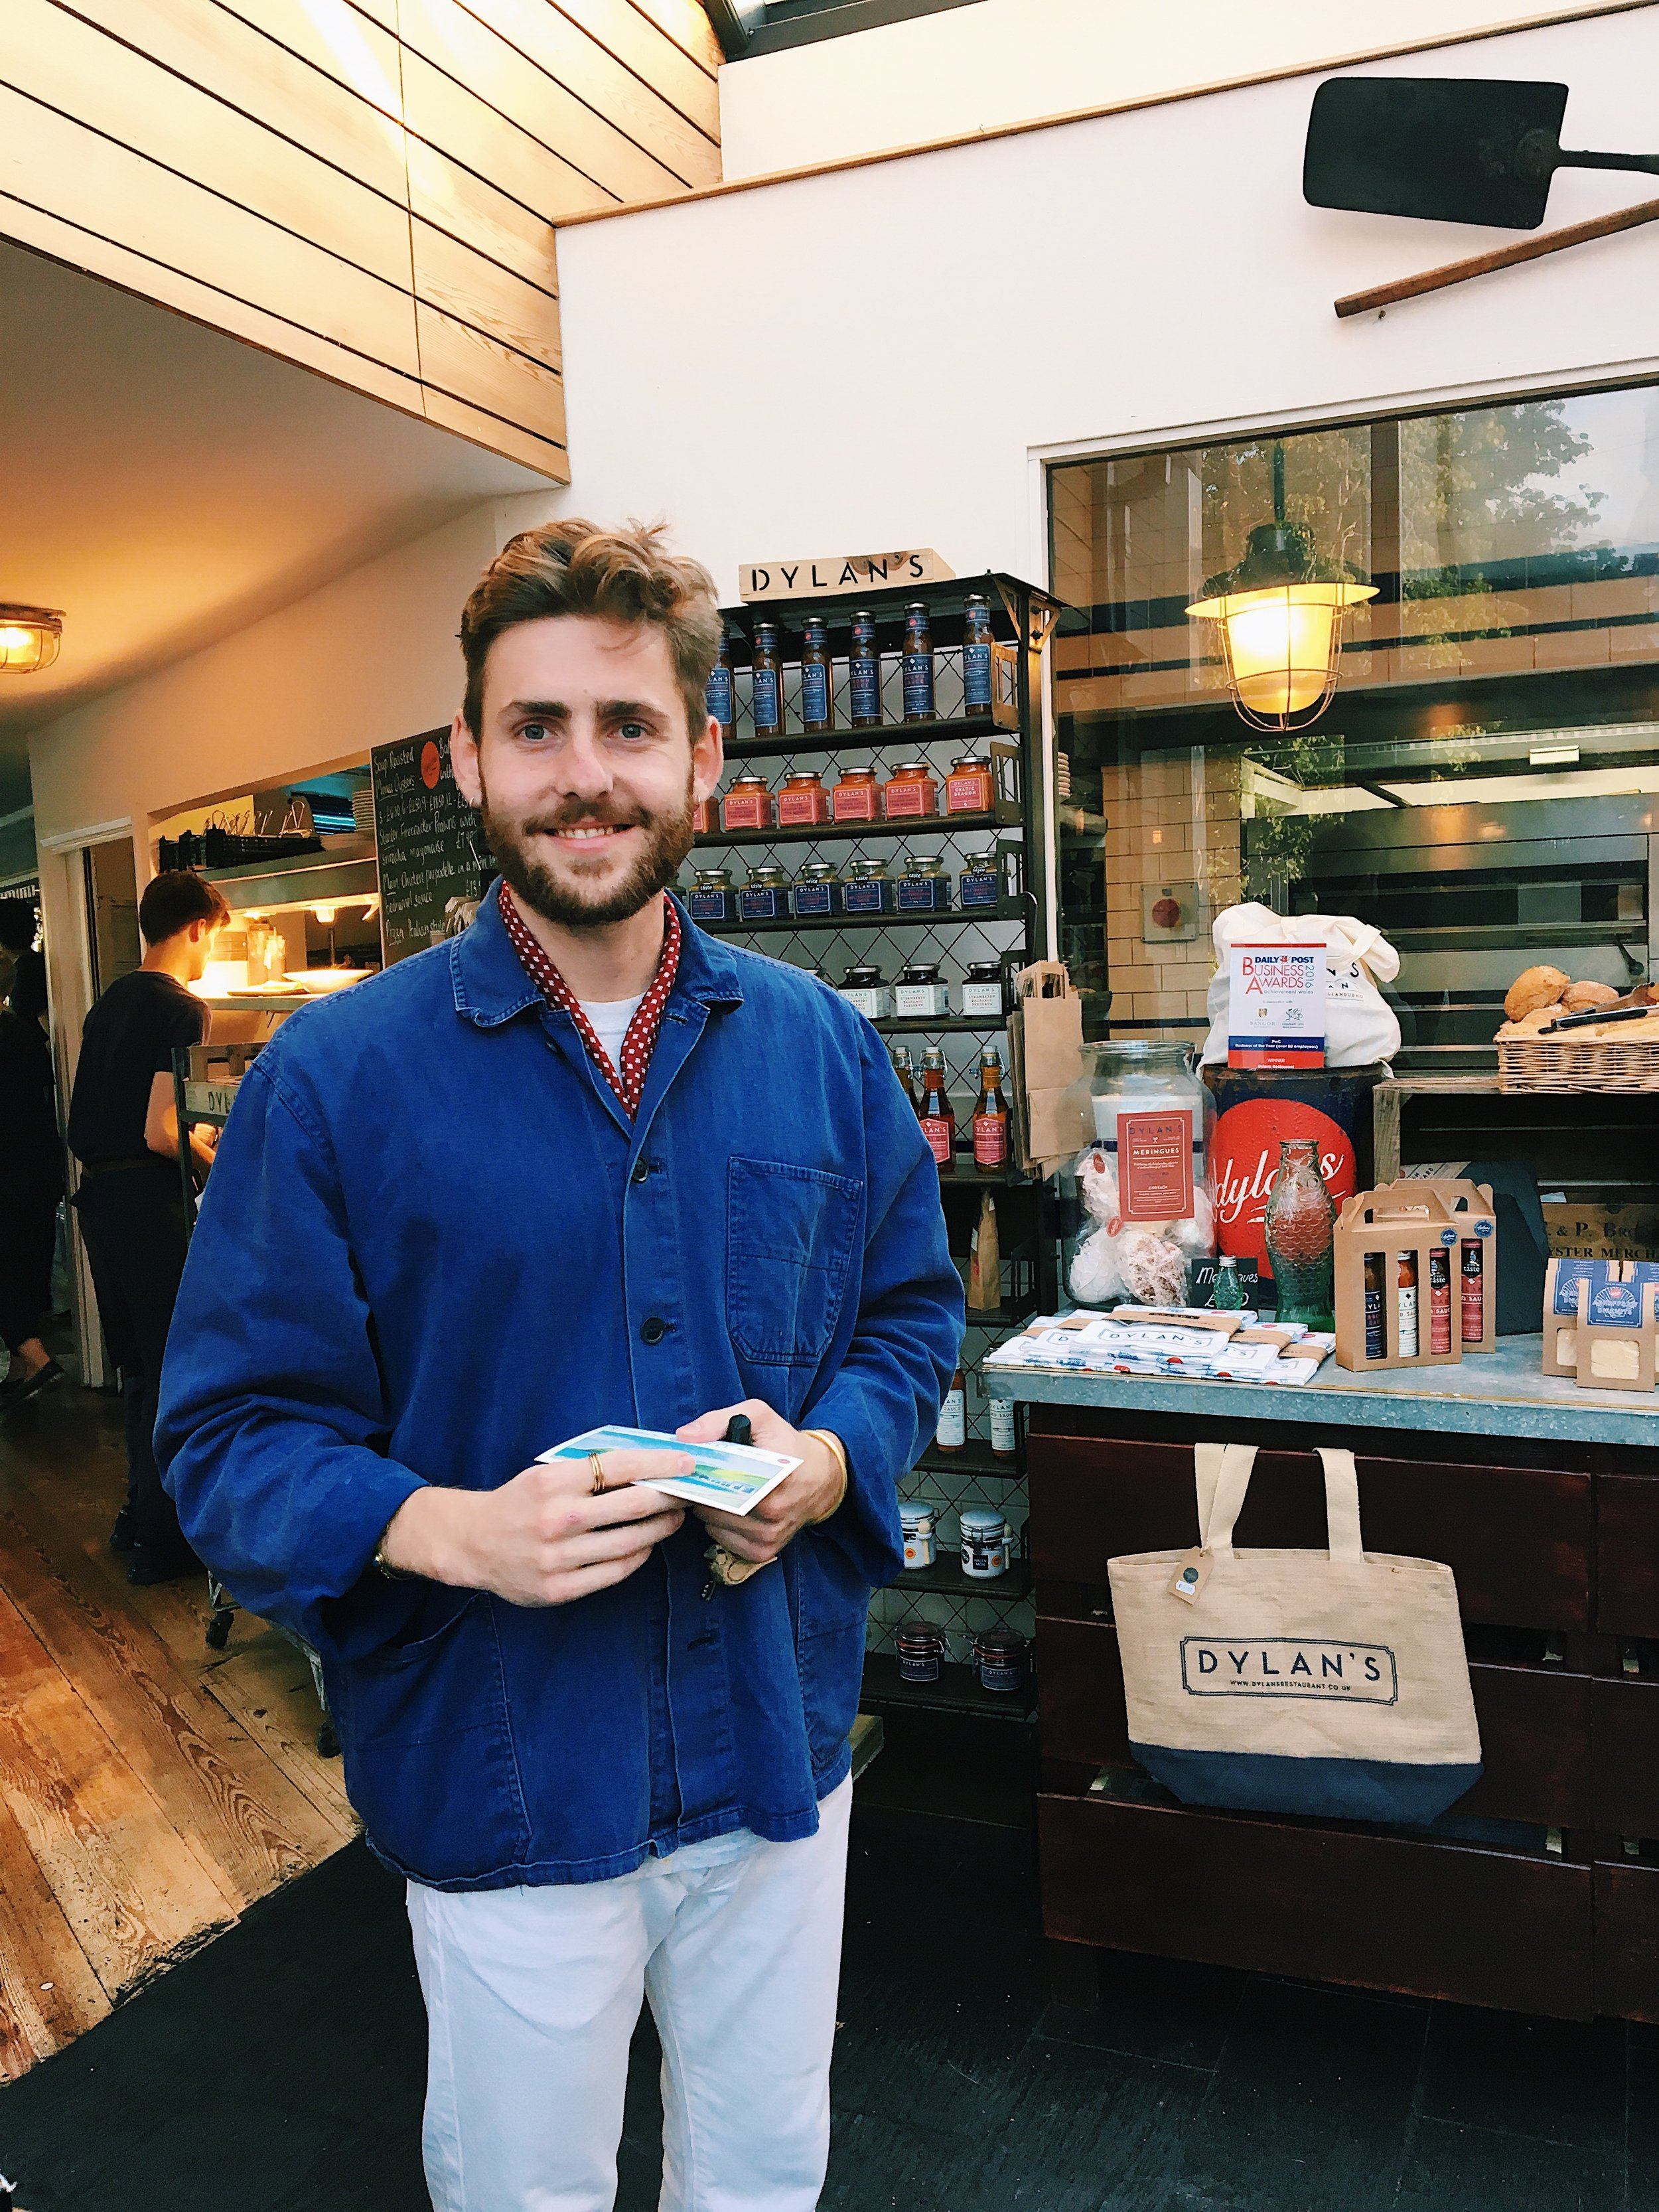 - Angus D Birditt is a food producer, freelance writer, and photographer. Following a Bachelor of Arts degree in History of Art from Oxford Brookes University, Angus co-founded The Bridge Lodge, an award-winning micro food company. Since its establishment in 2016, both Angus and The Bridge Lodge have won several awards.